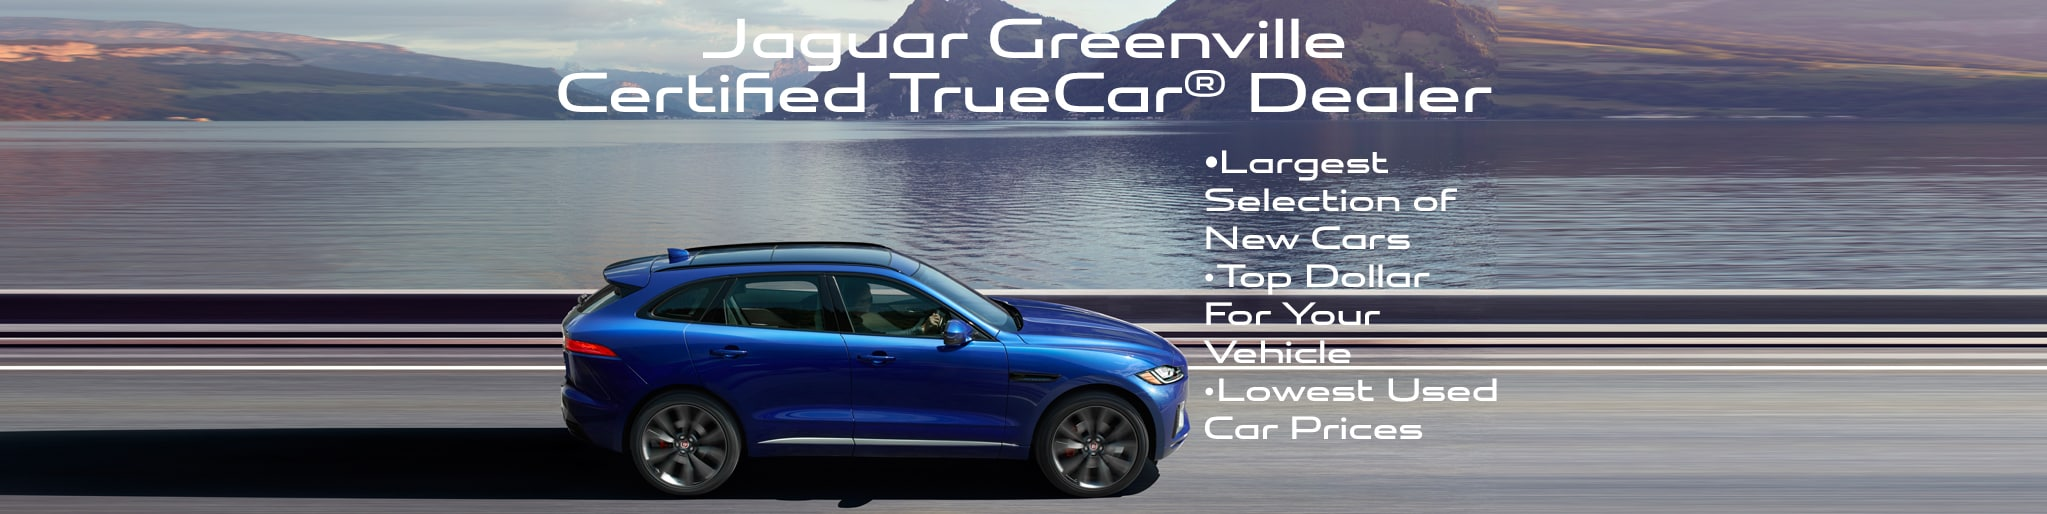 Certified Jaguar TrueCar Dealer in Greenville, SC